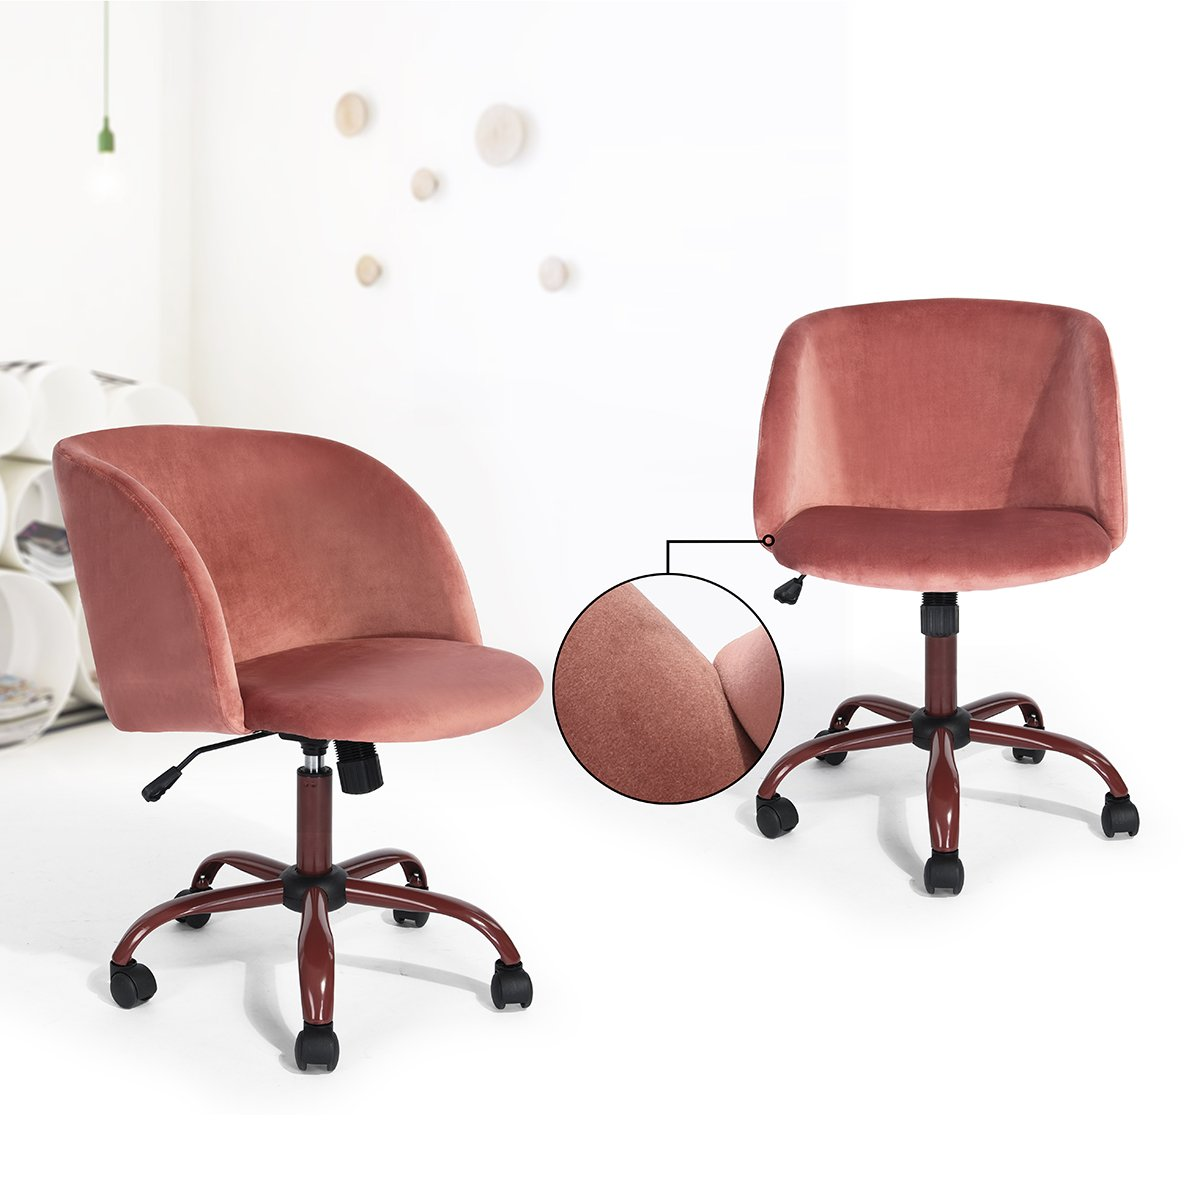 Eggree Mid Back Swivel Computer Desk Chair Ergonomic